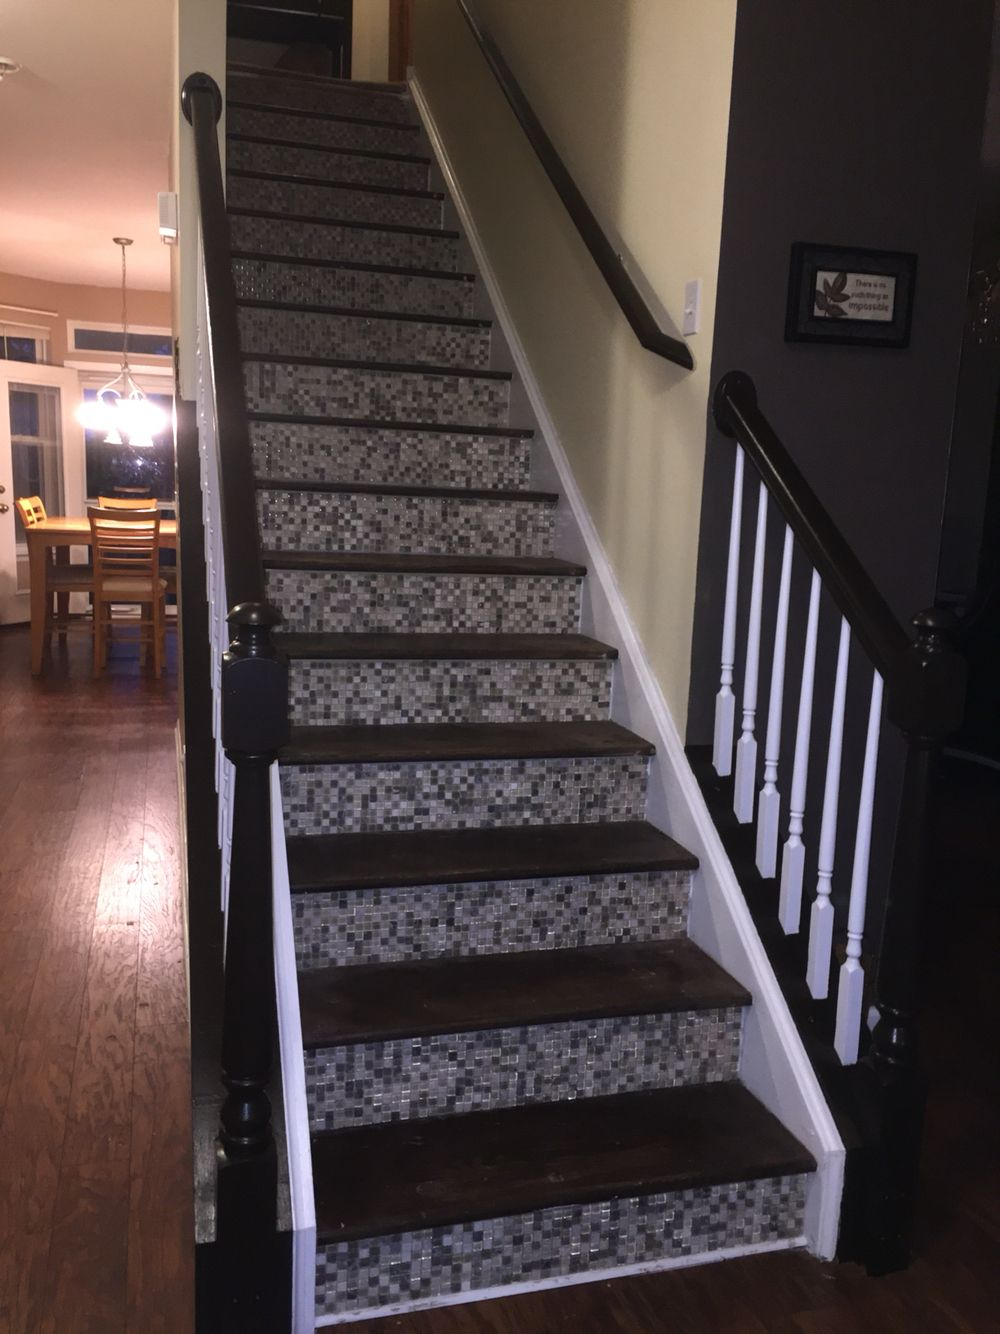 Tore up carpet, stained treads, glass mosaic tiles on the risers, repainted spindles and rails.